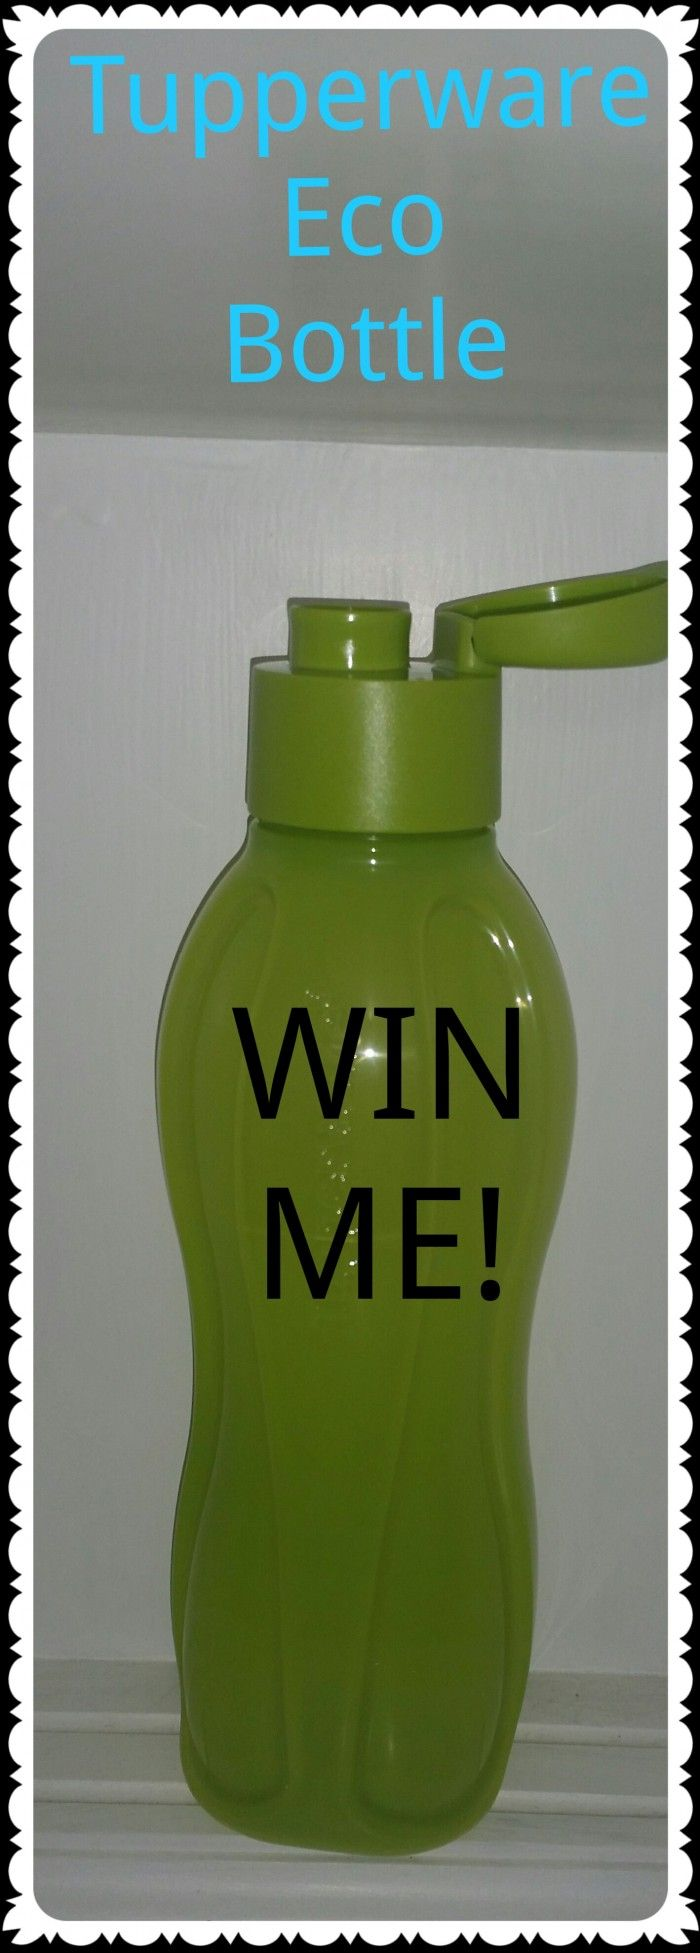 tupperware eco bottle win